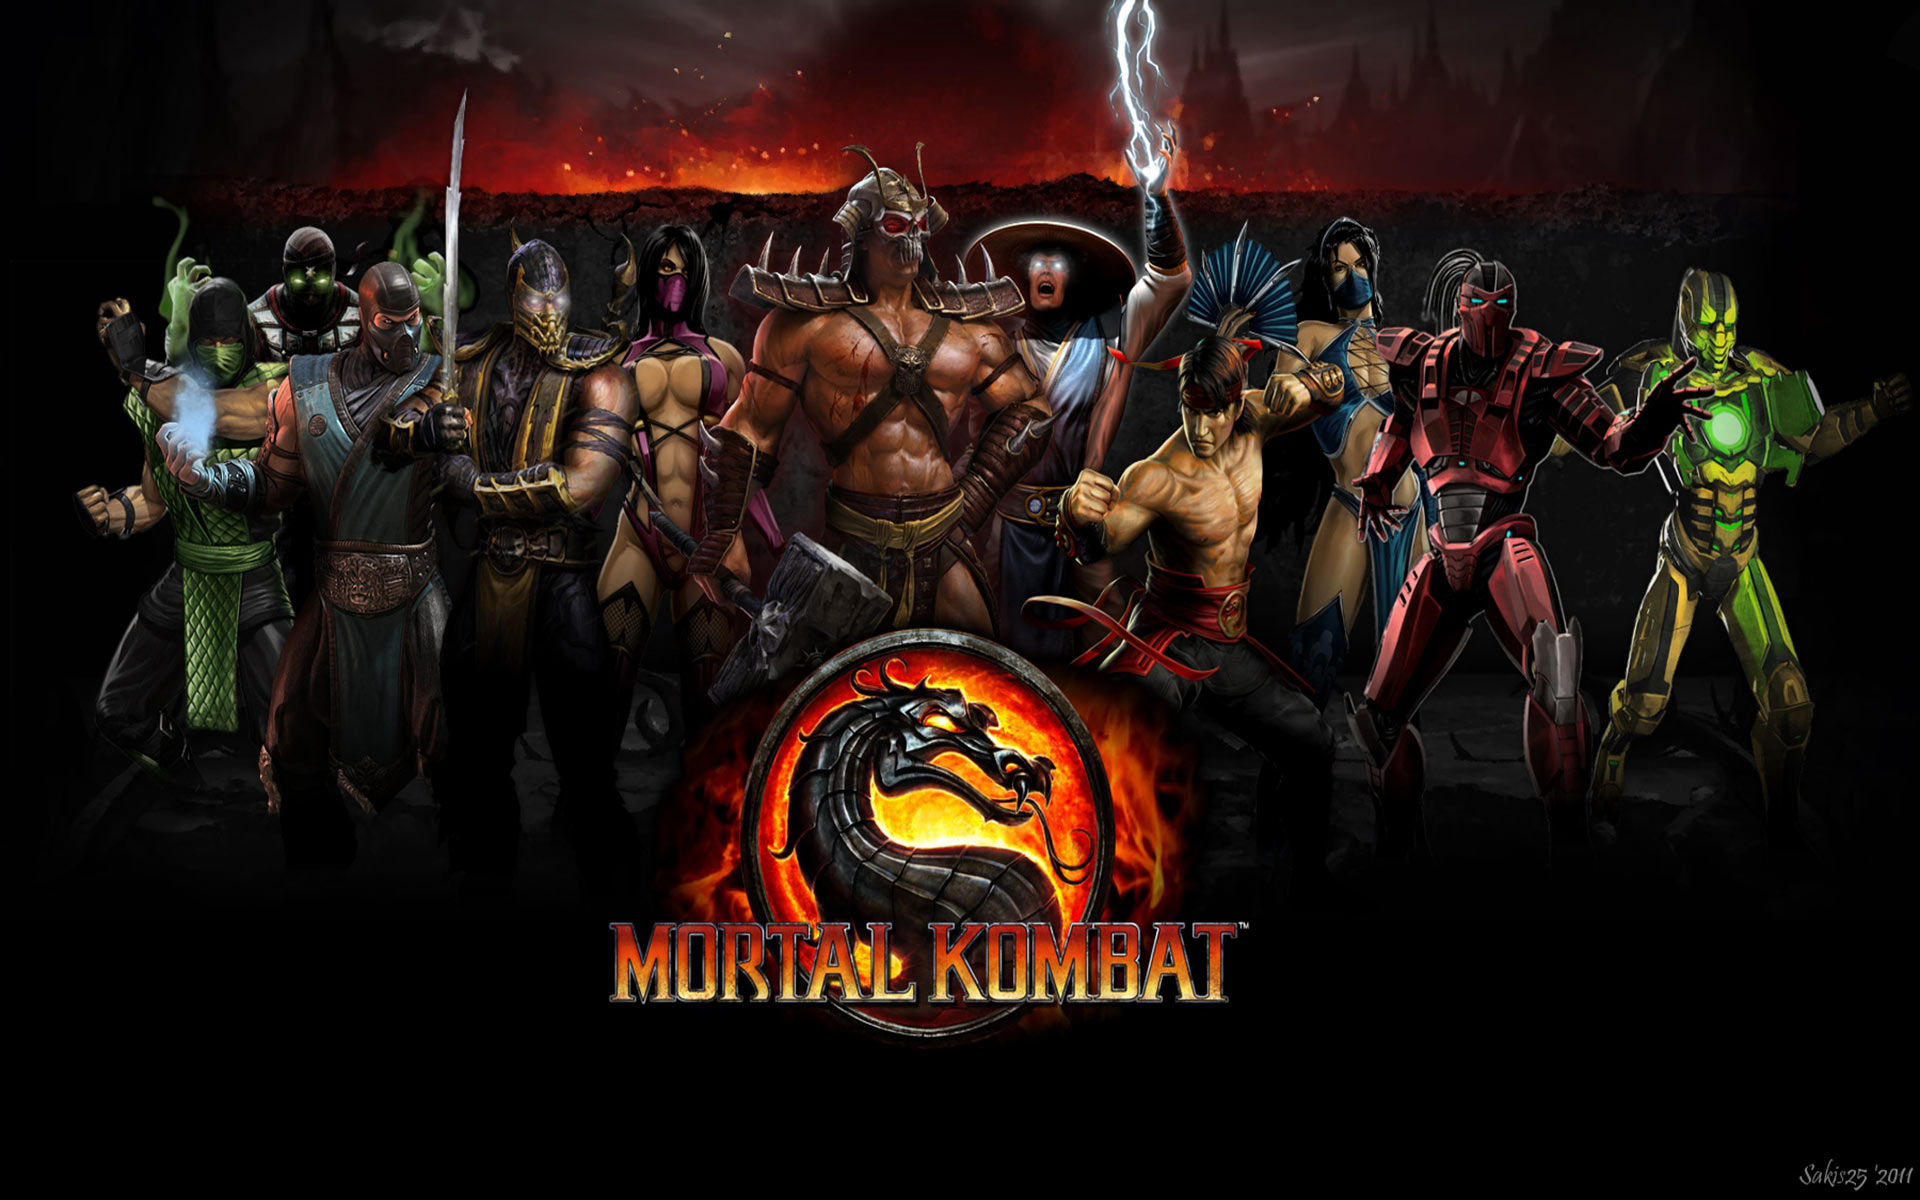 Video Game - Mortal Kombat  Wallpaper